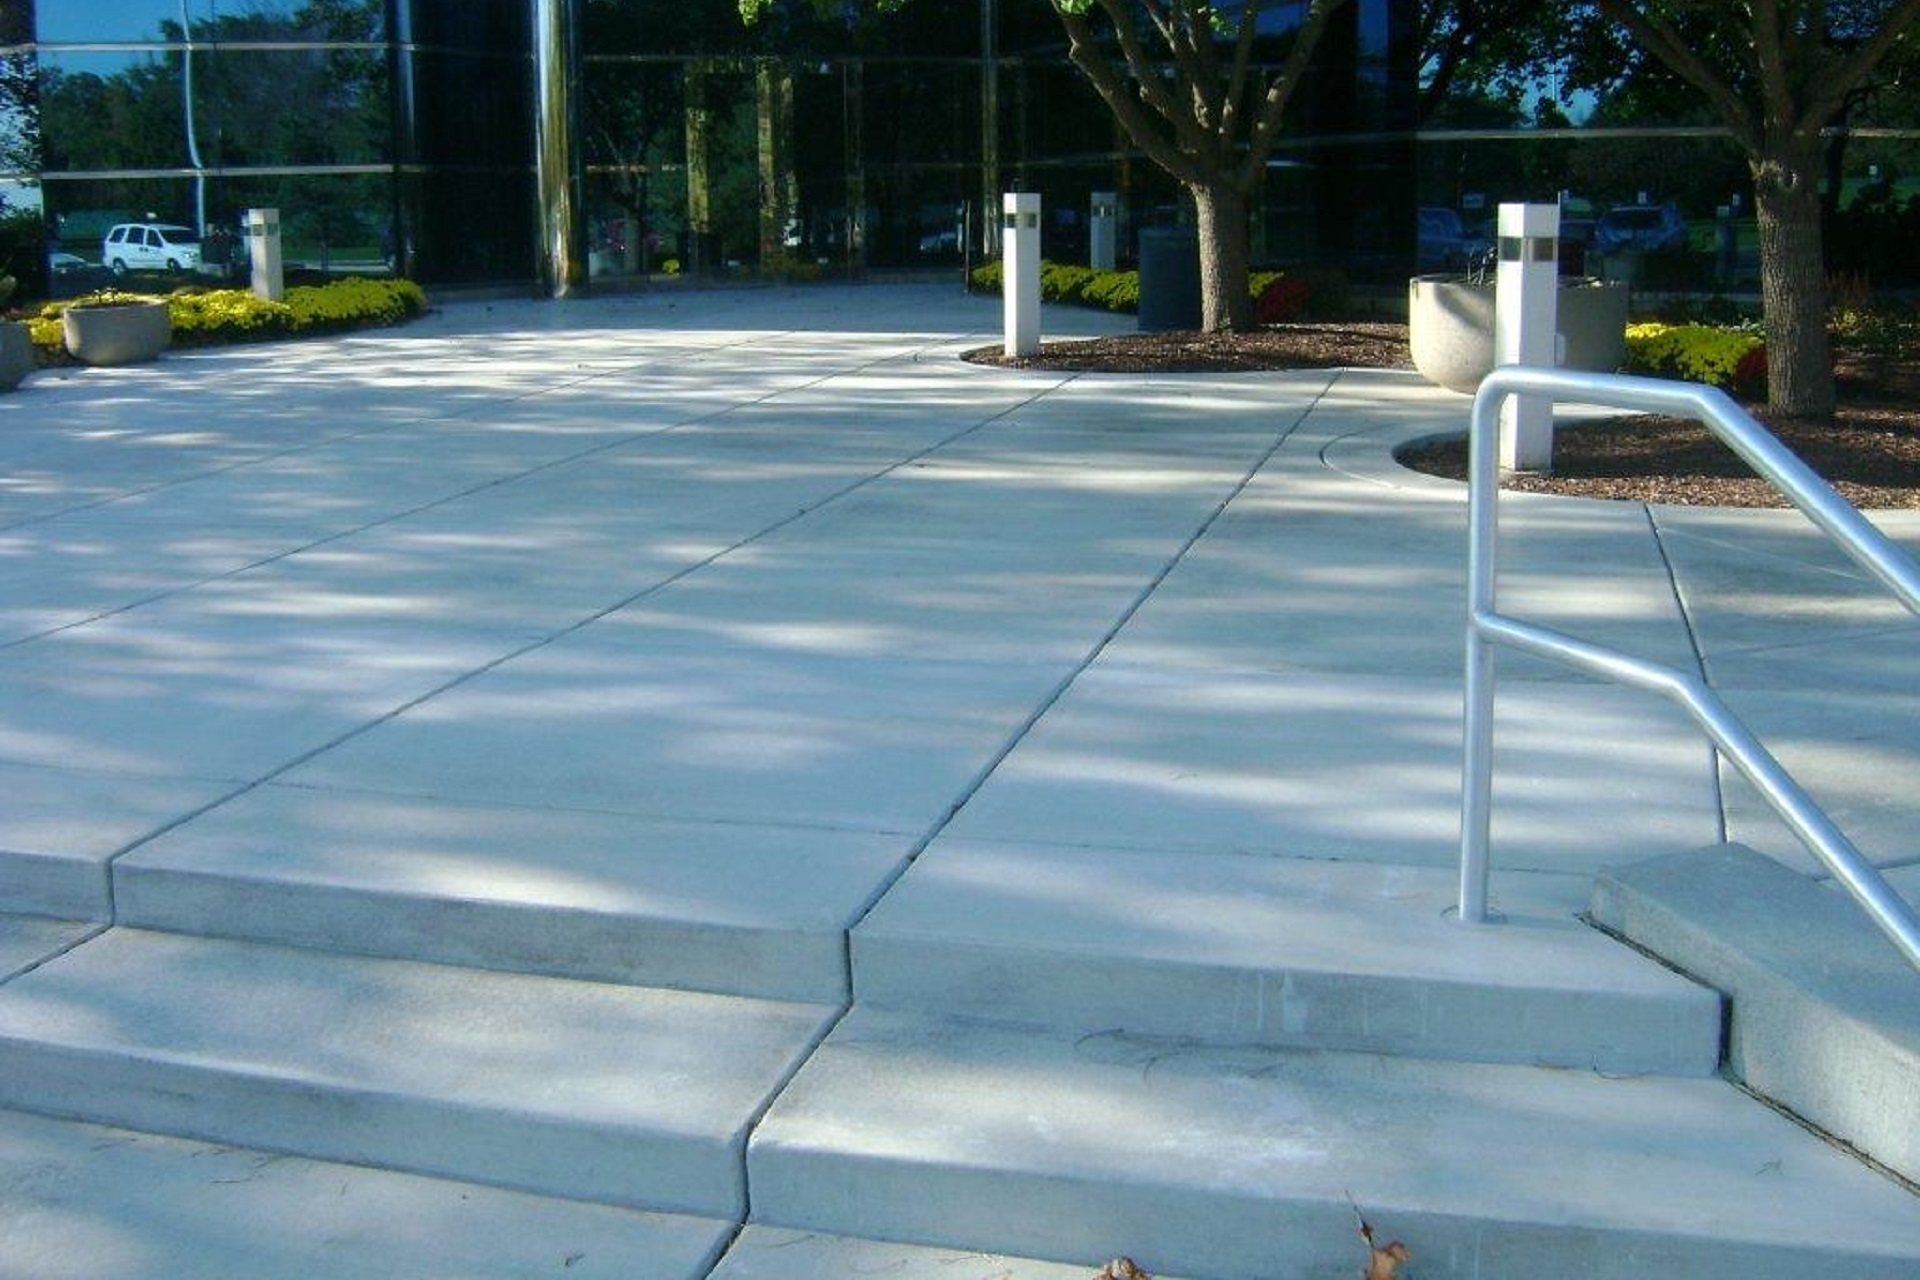 comercial Concrete Paving, Paving, Milwaukee, Concrete Contractor Wisconsin, Stamped Concrete, paving